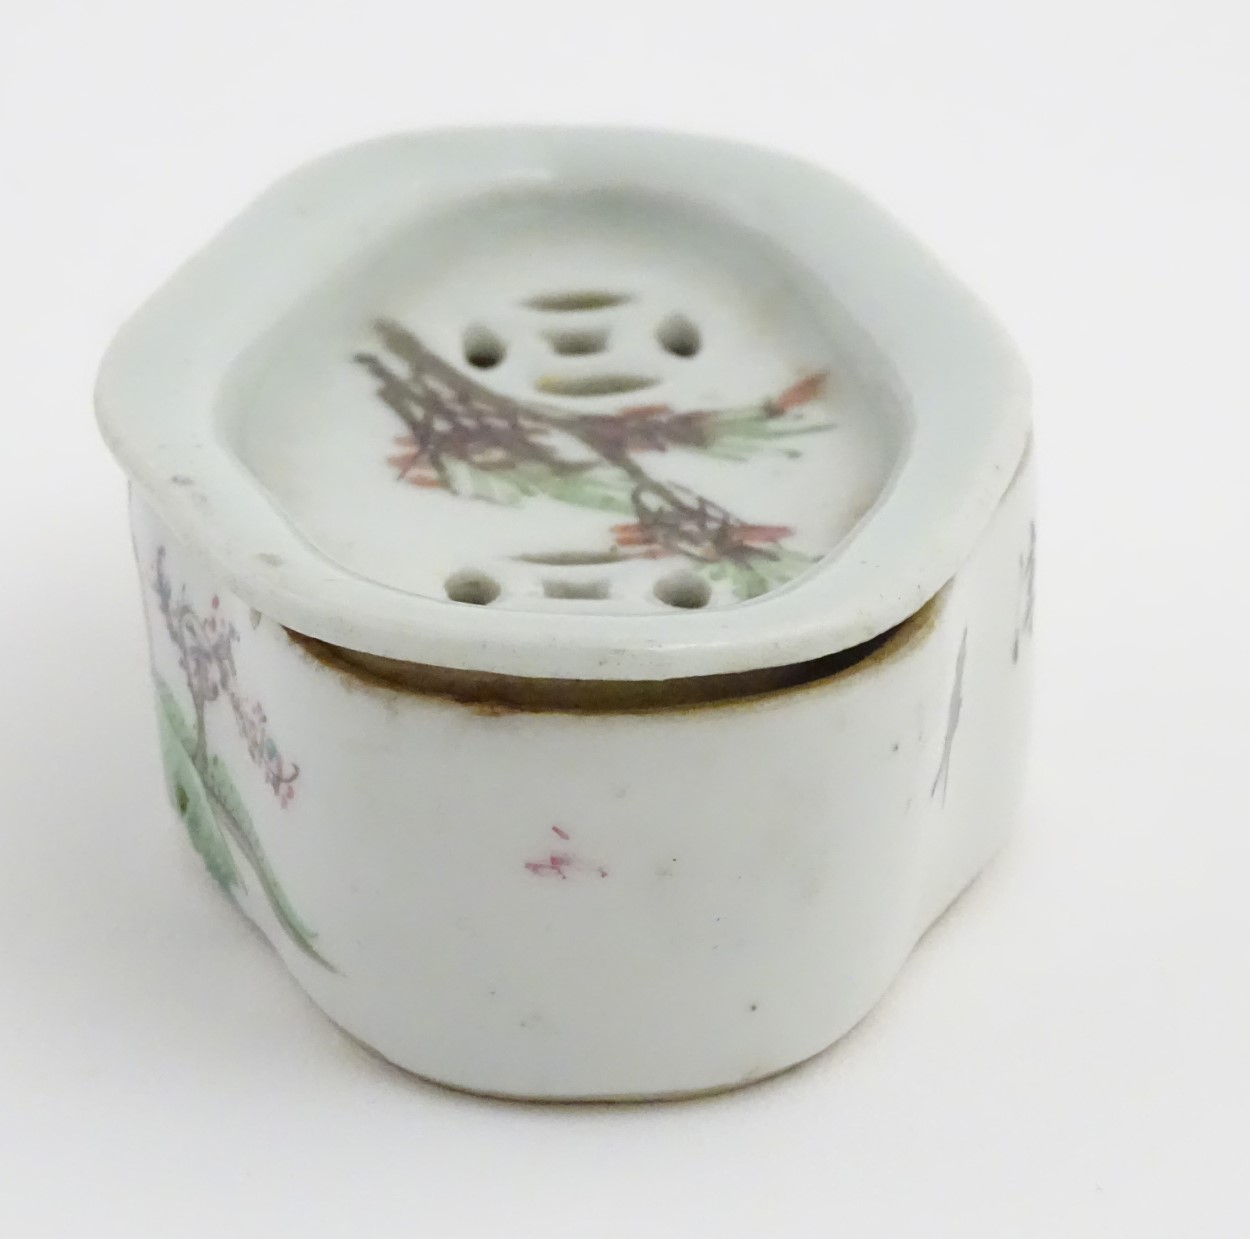 Lot 42 - A Chinese lozenge lidded dish hand painted with 4 character markings and a figure in a landscape to